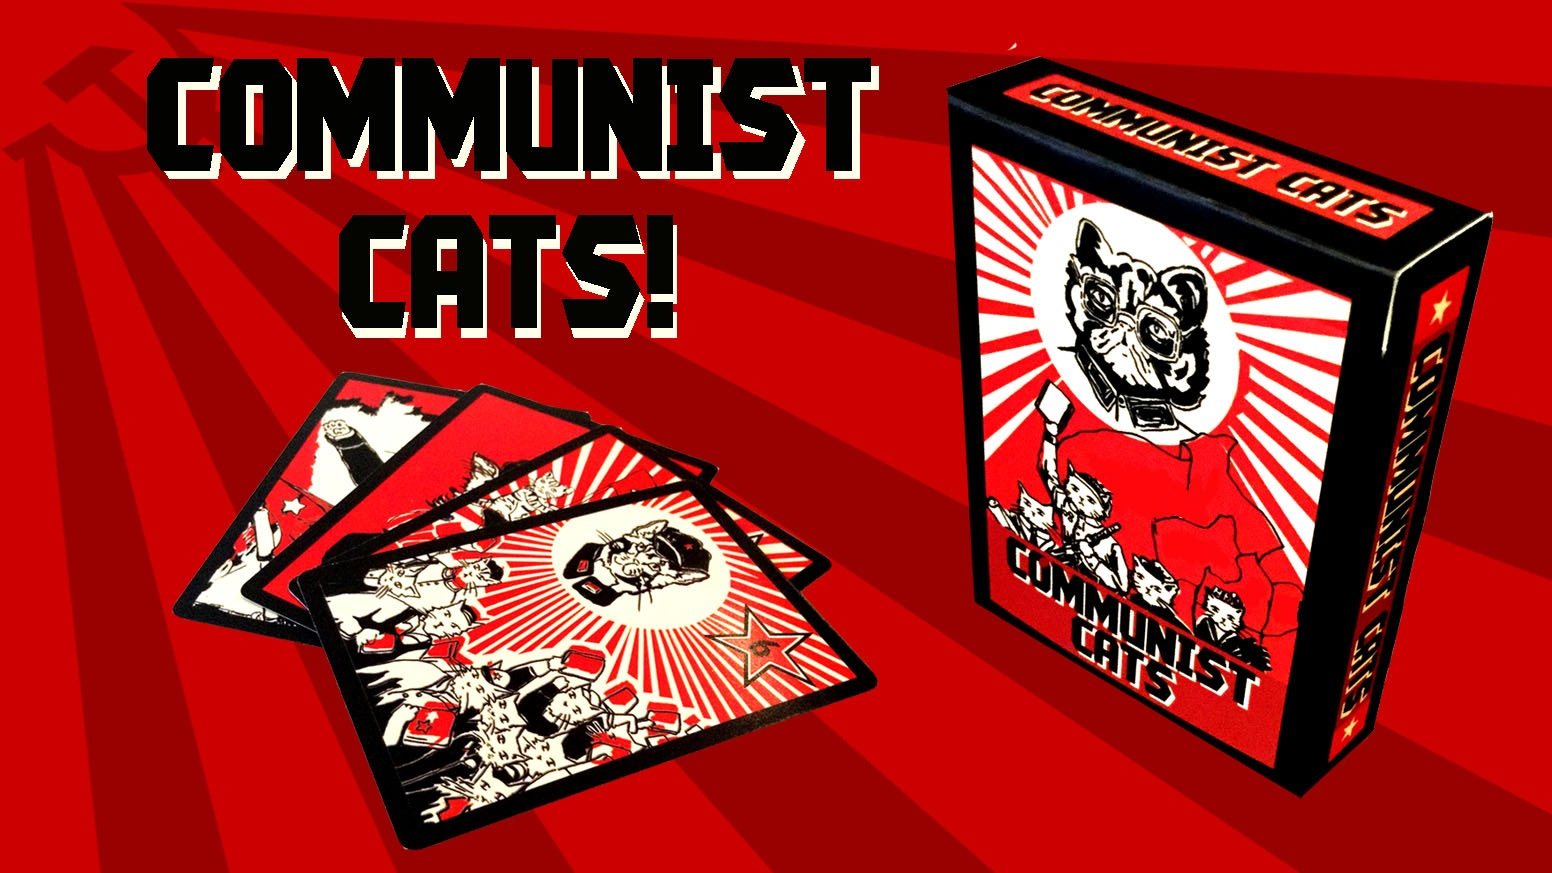 Communist Cats: A party card game for 2-6 players. Come comrades, and join the cats in their quest for power and glory!!!